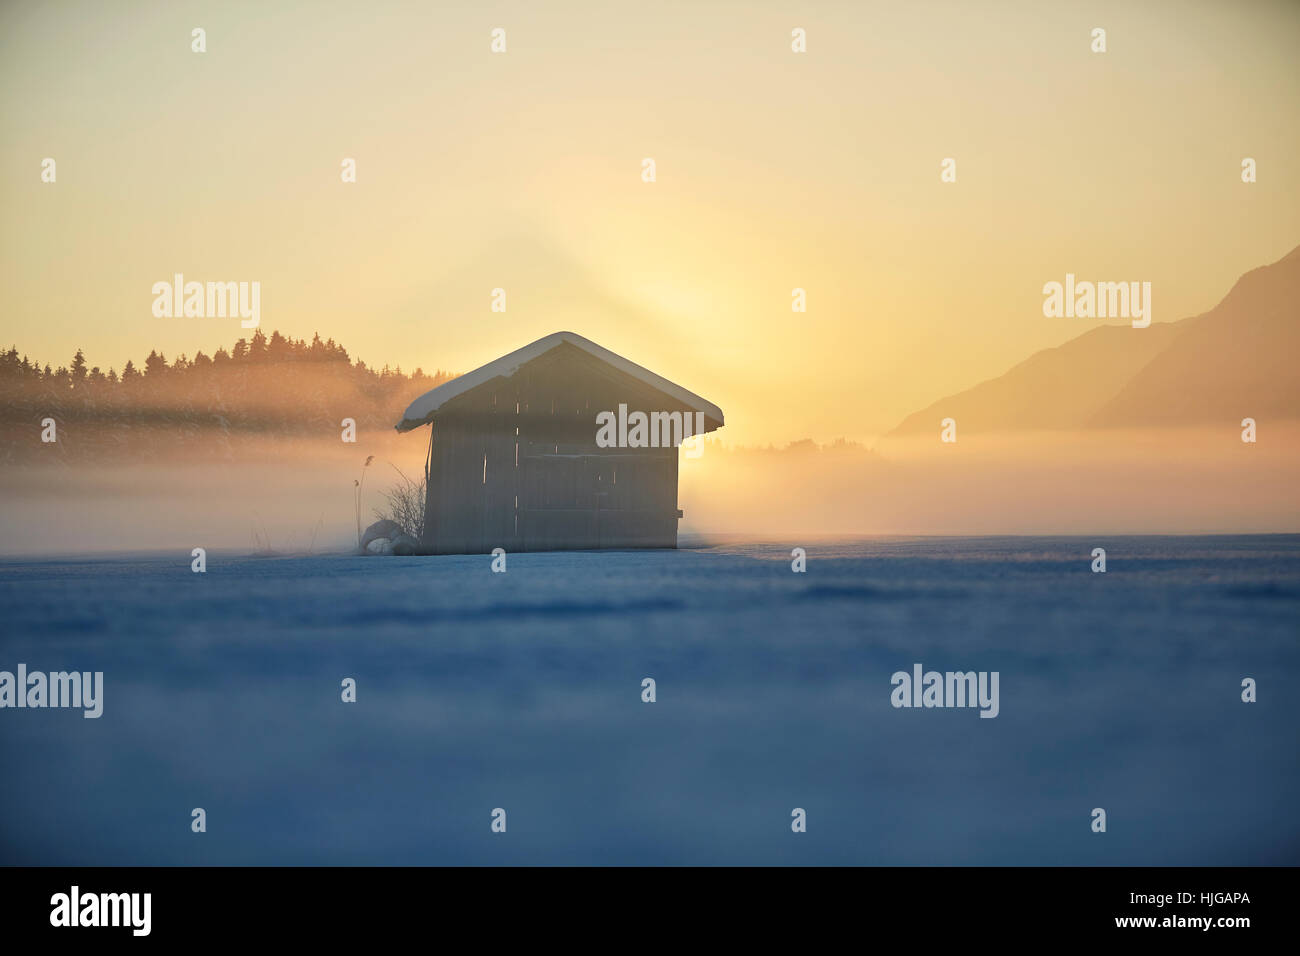 Small cabin, winter landscape, hay barn in fog at dusk, Kramsach, Tyrol, Austria - Stock Image